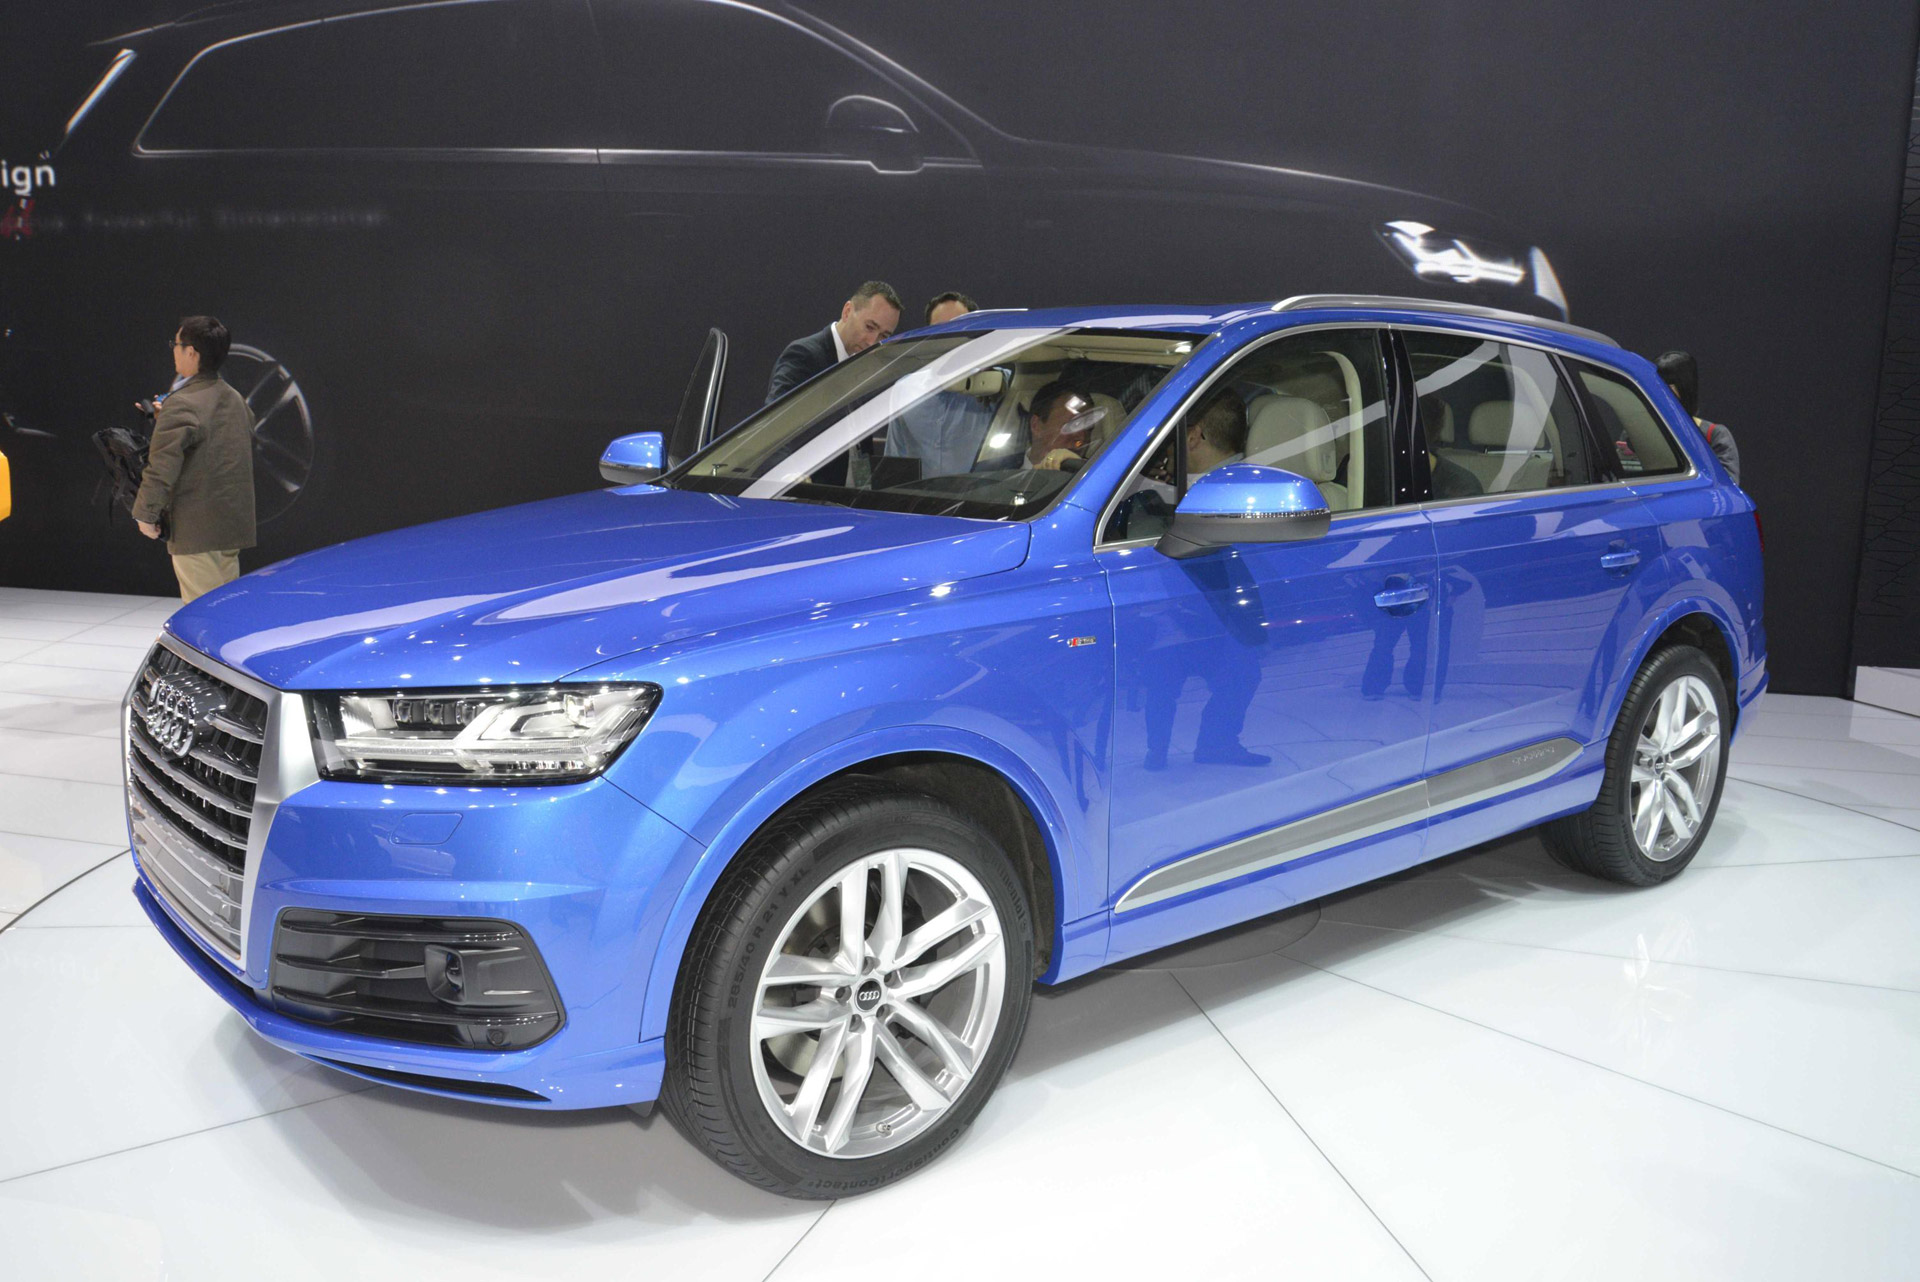 2017 Audi Q7 e-Tron Plug-In Hybrid Will Be Gasoline, Not Diesel, For U.S. And China